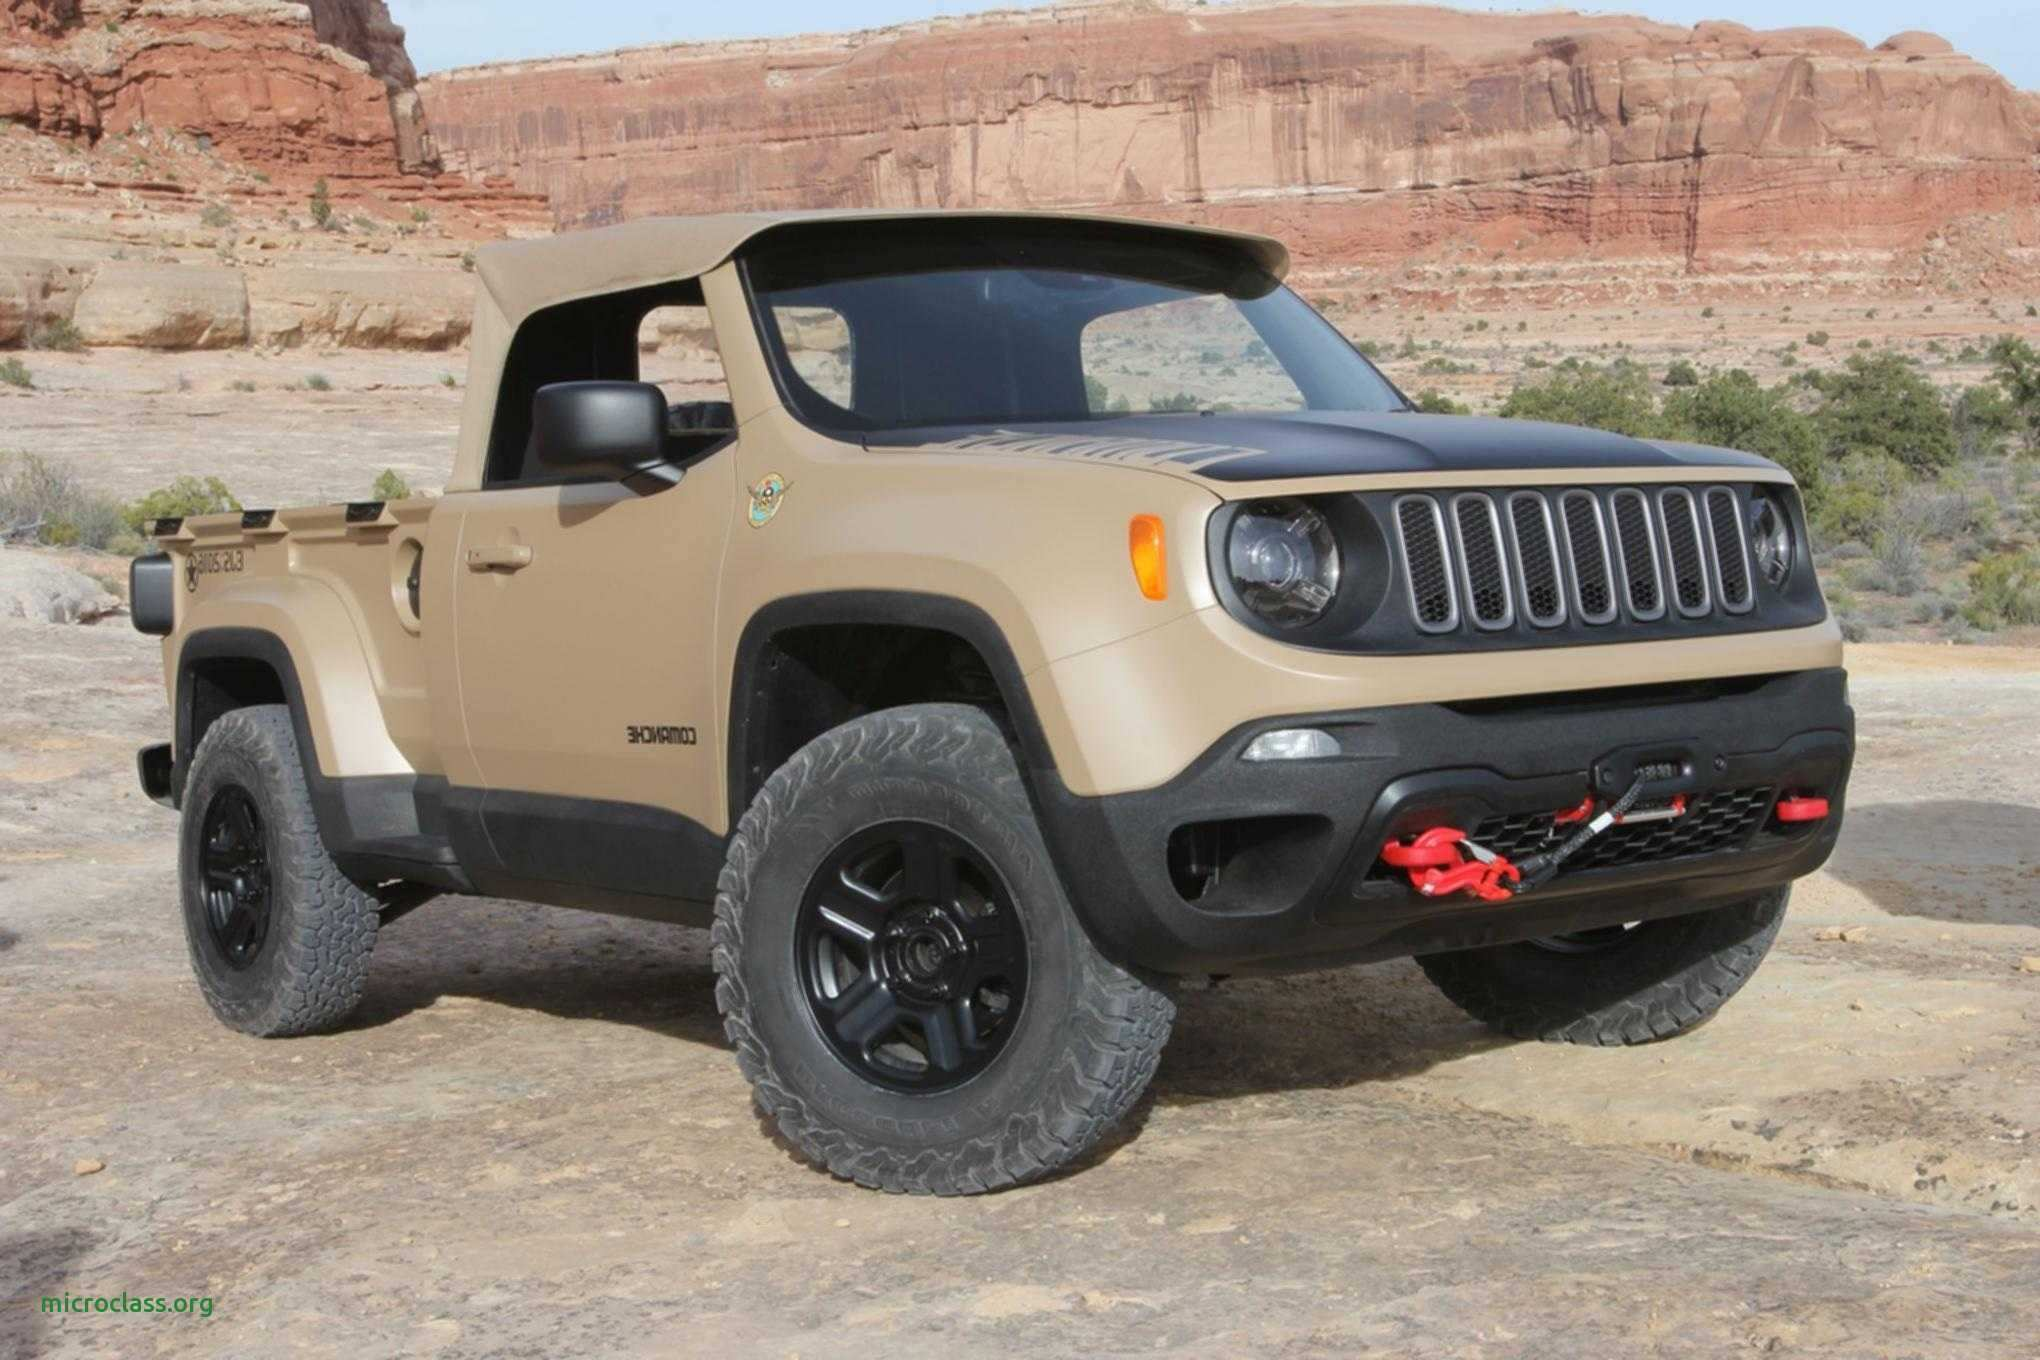 36 All New The Comanche Jeep 2019 Release Price with The Comanche Jeep 2019 Release